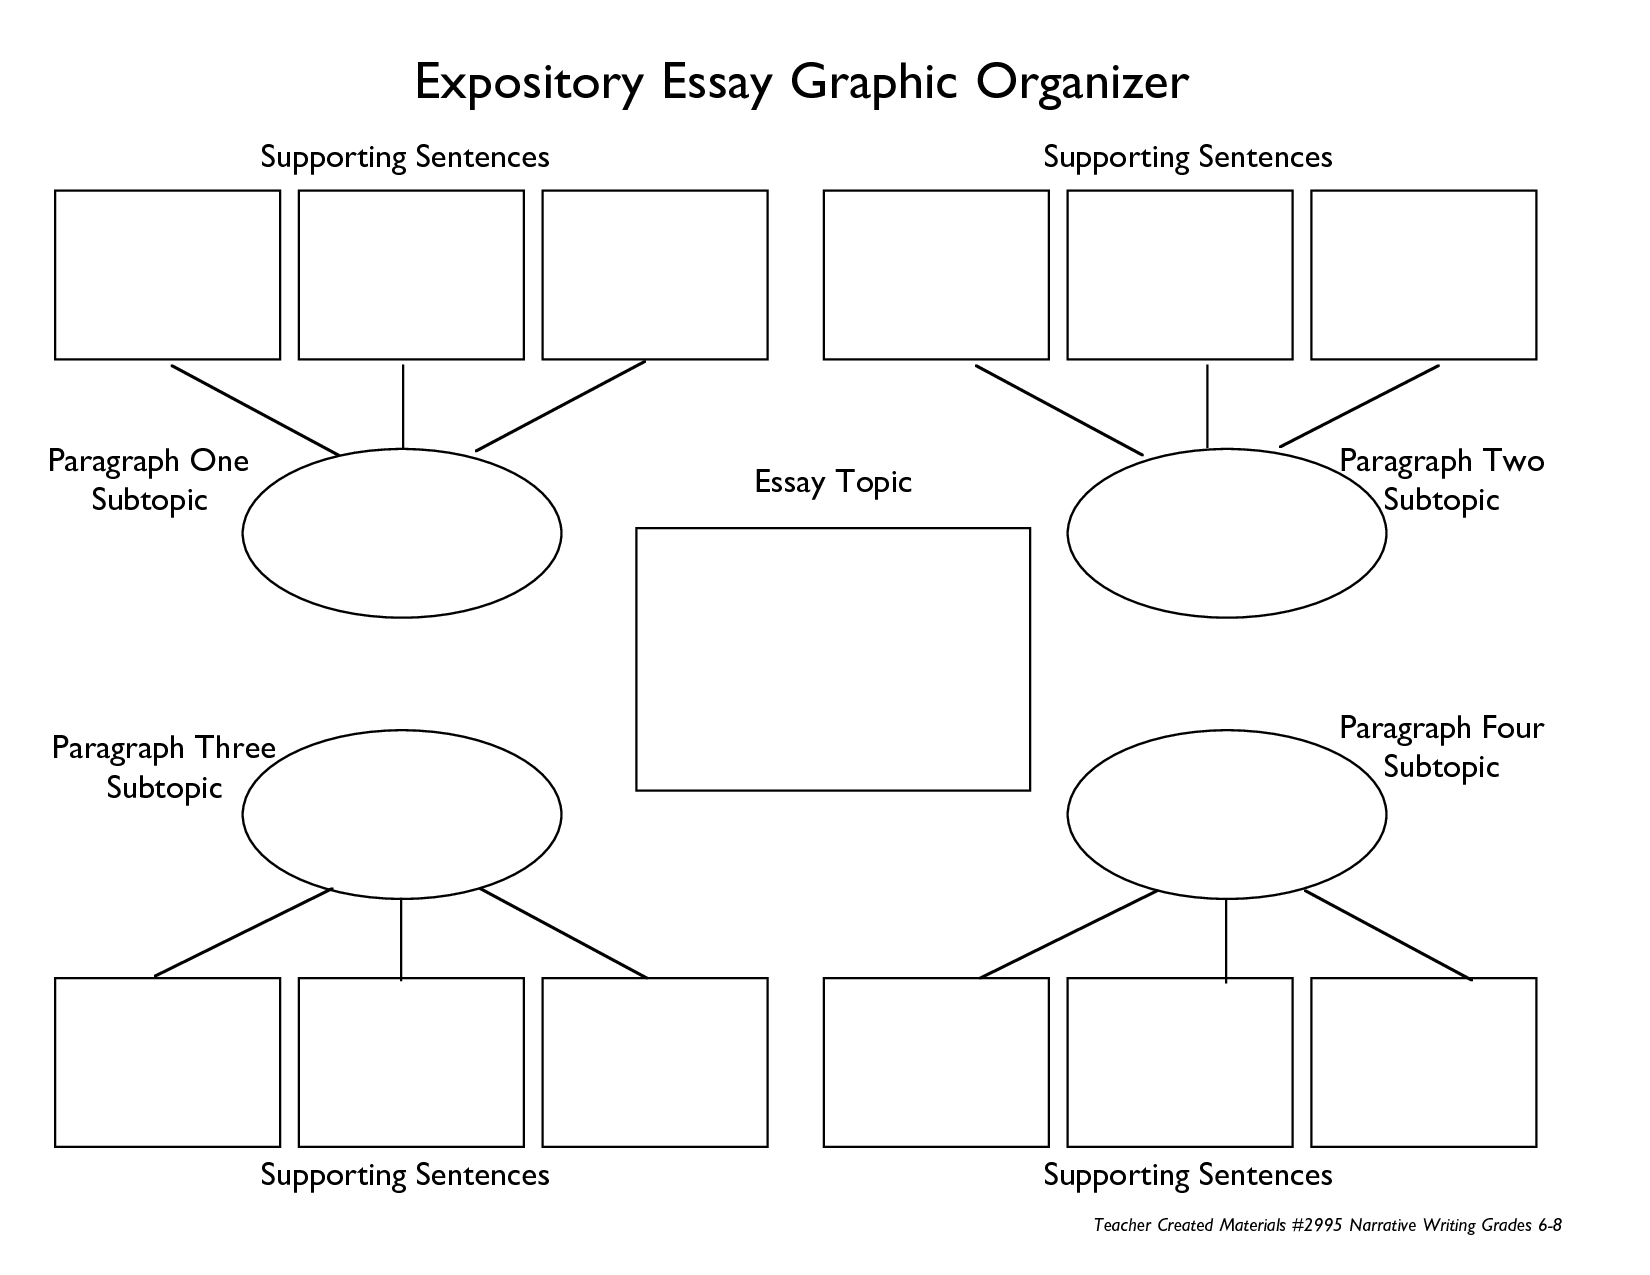 Easy graphic organizer for a 5-paragraph essay